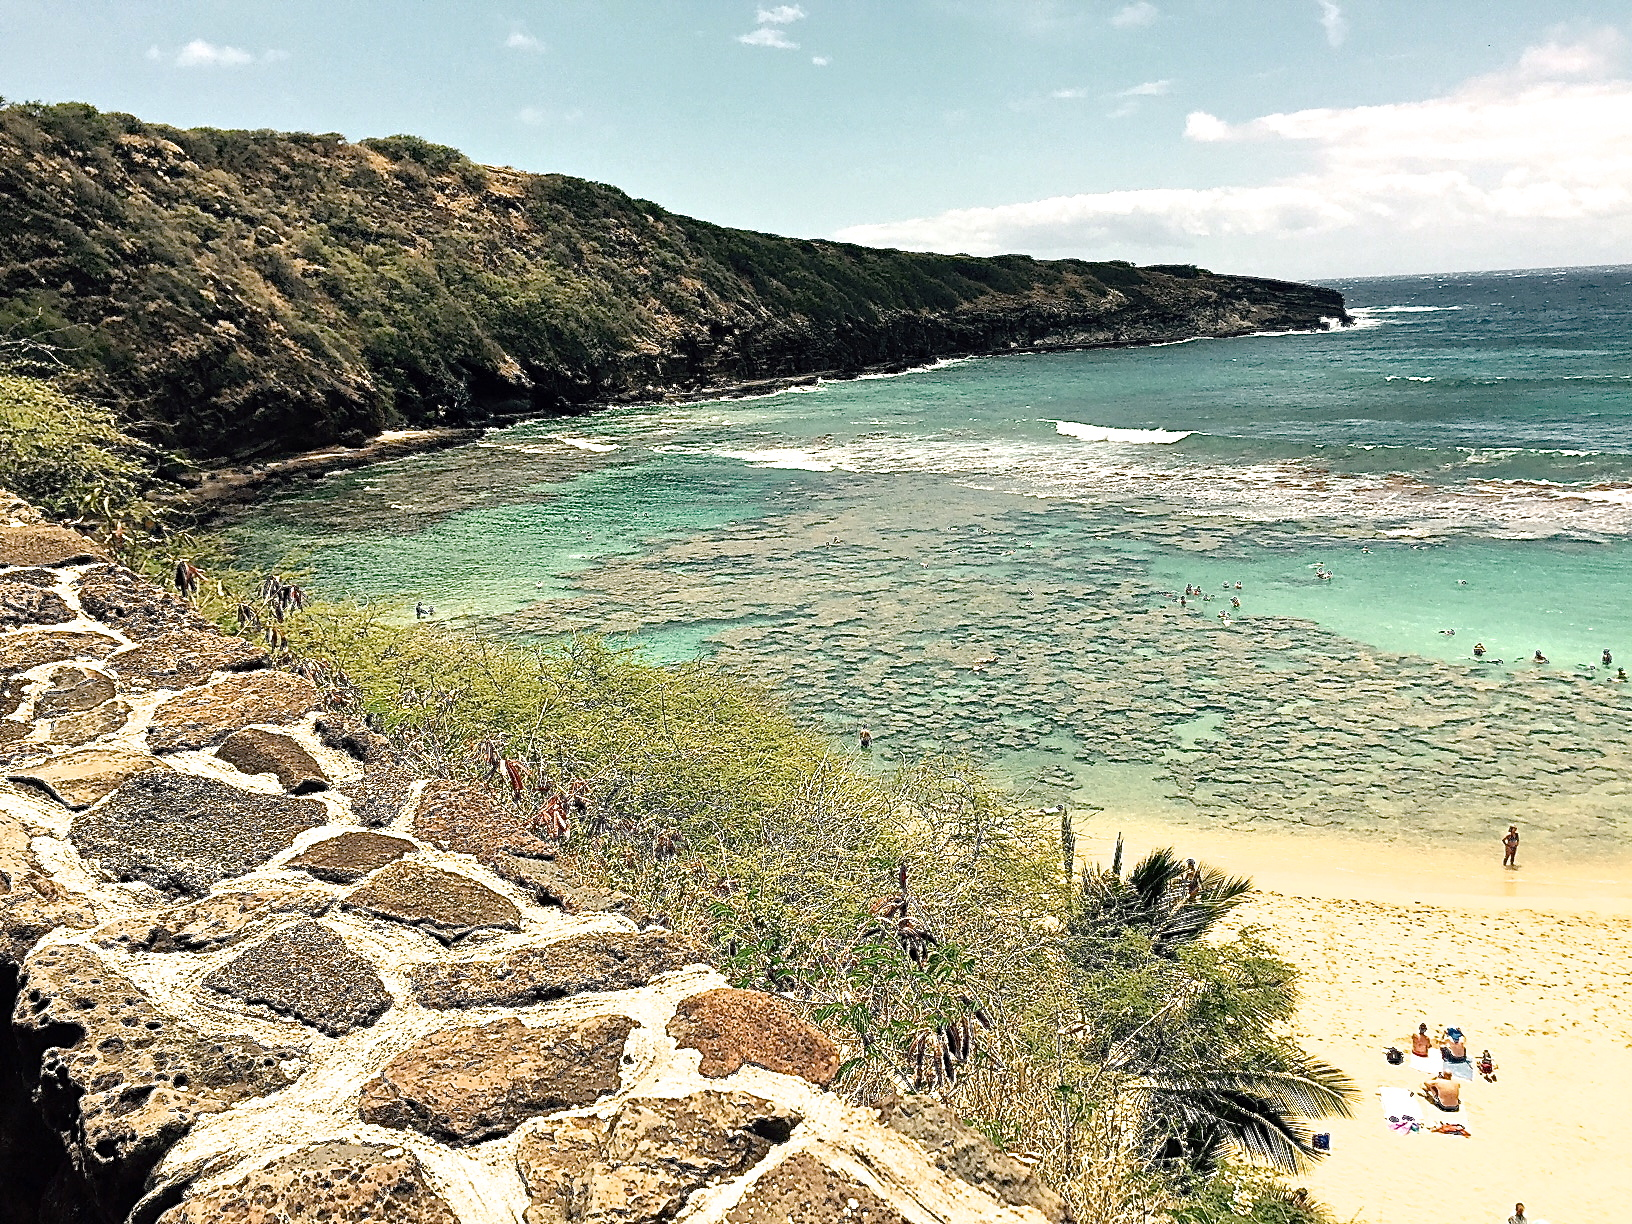 Snorkeling at Hanauma Bay-claimed as one of the best in Oahu.